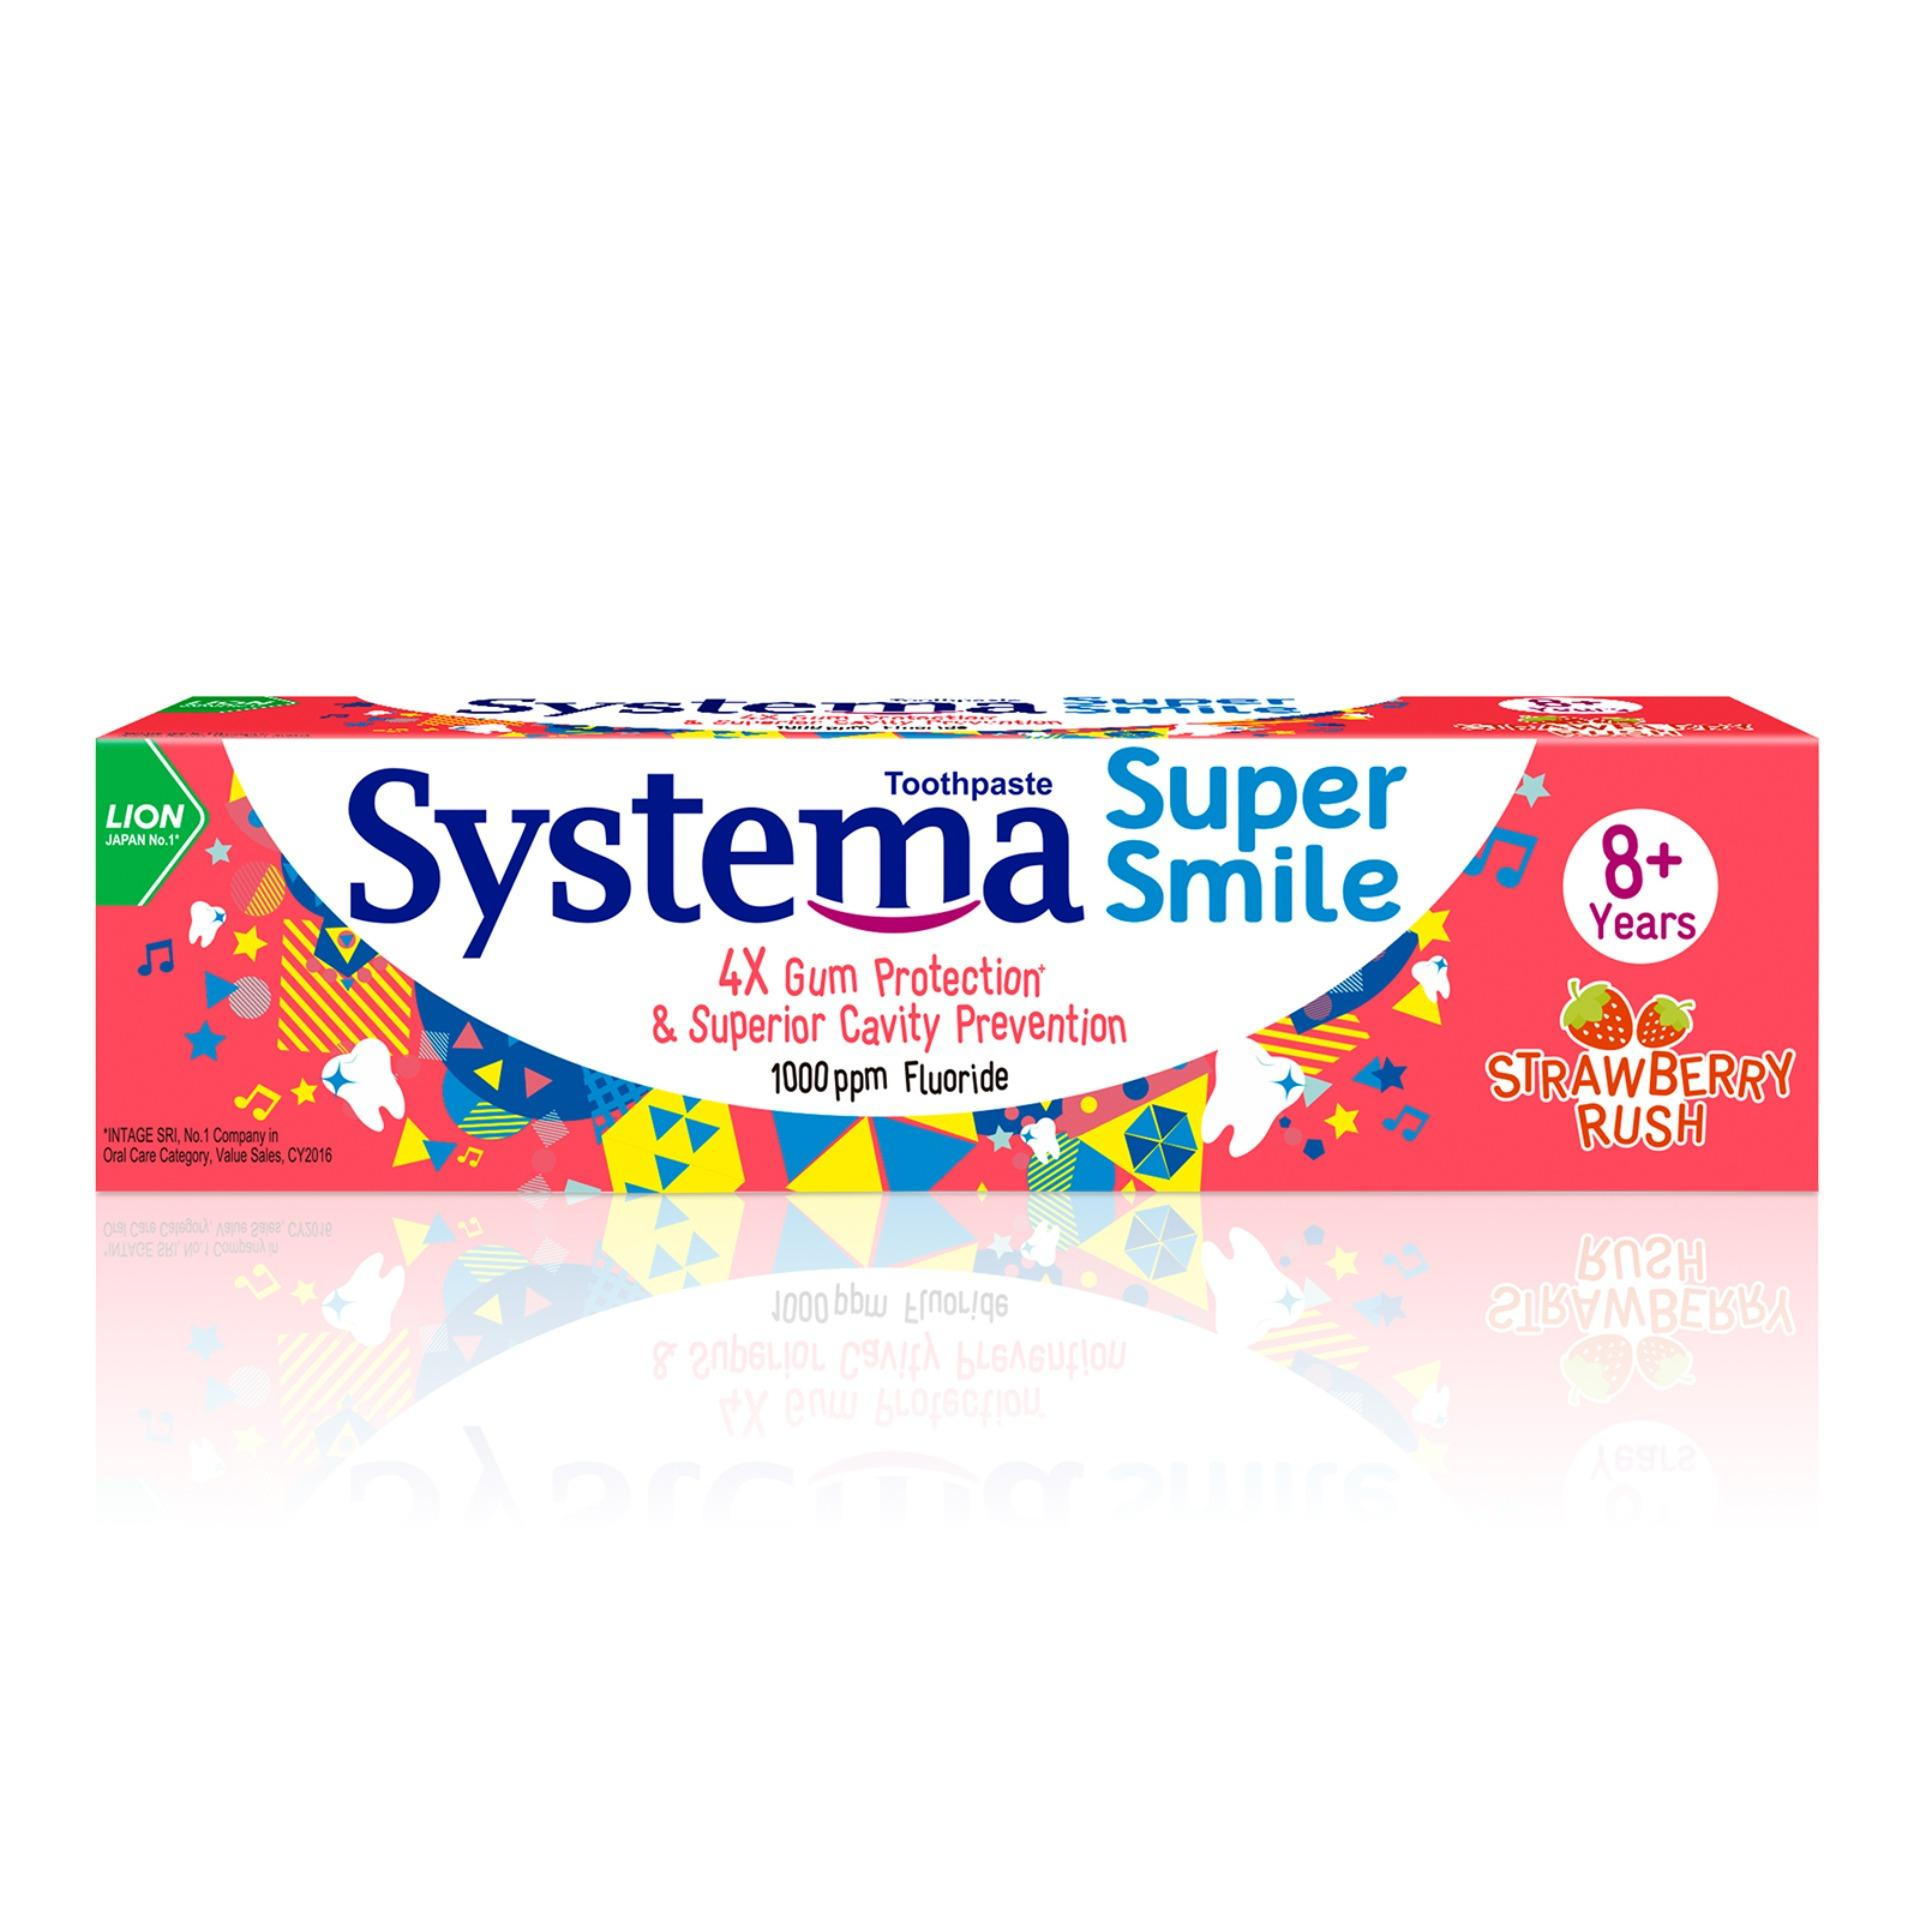 Systema Super Smile Toothpaste (Strawberry Rush) 60g